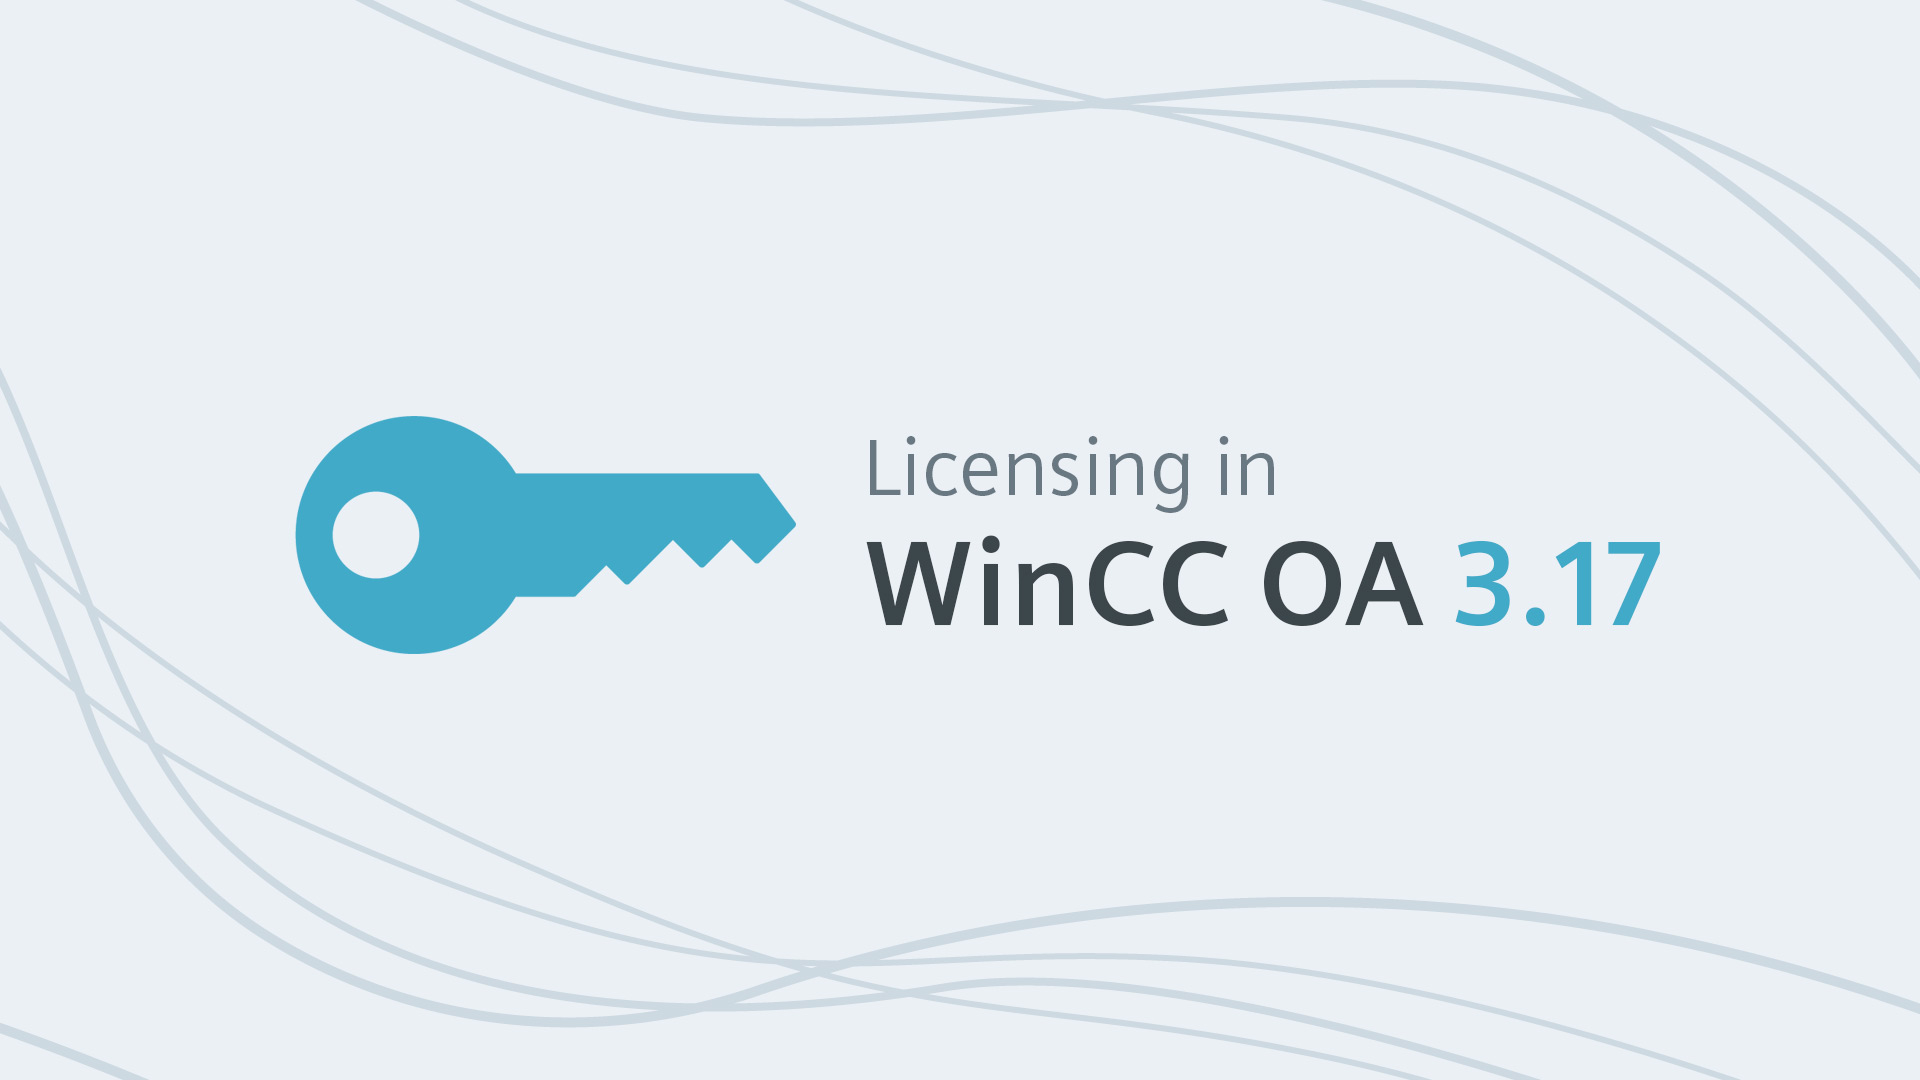 Licensing in WinCC OA